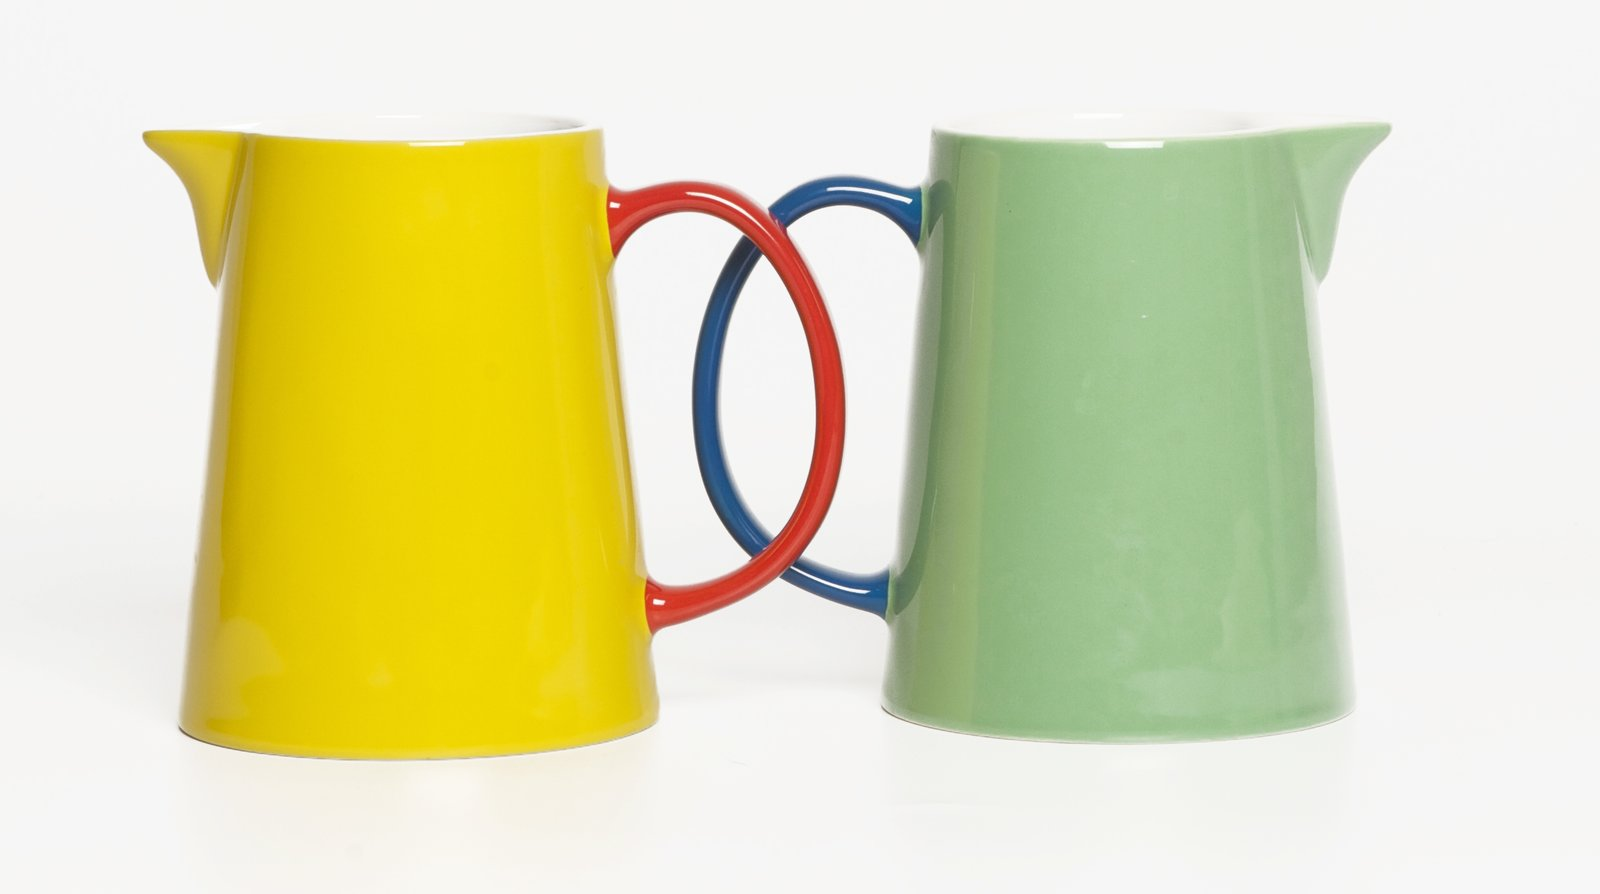 """Search """"jansen co my mug espresso saucer"""" from This Just in at the Dwell Store: Jansen+co"""